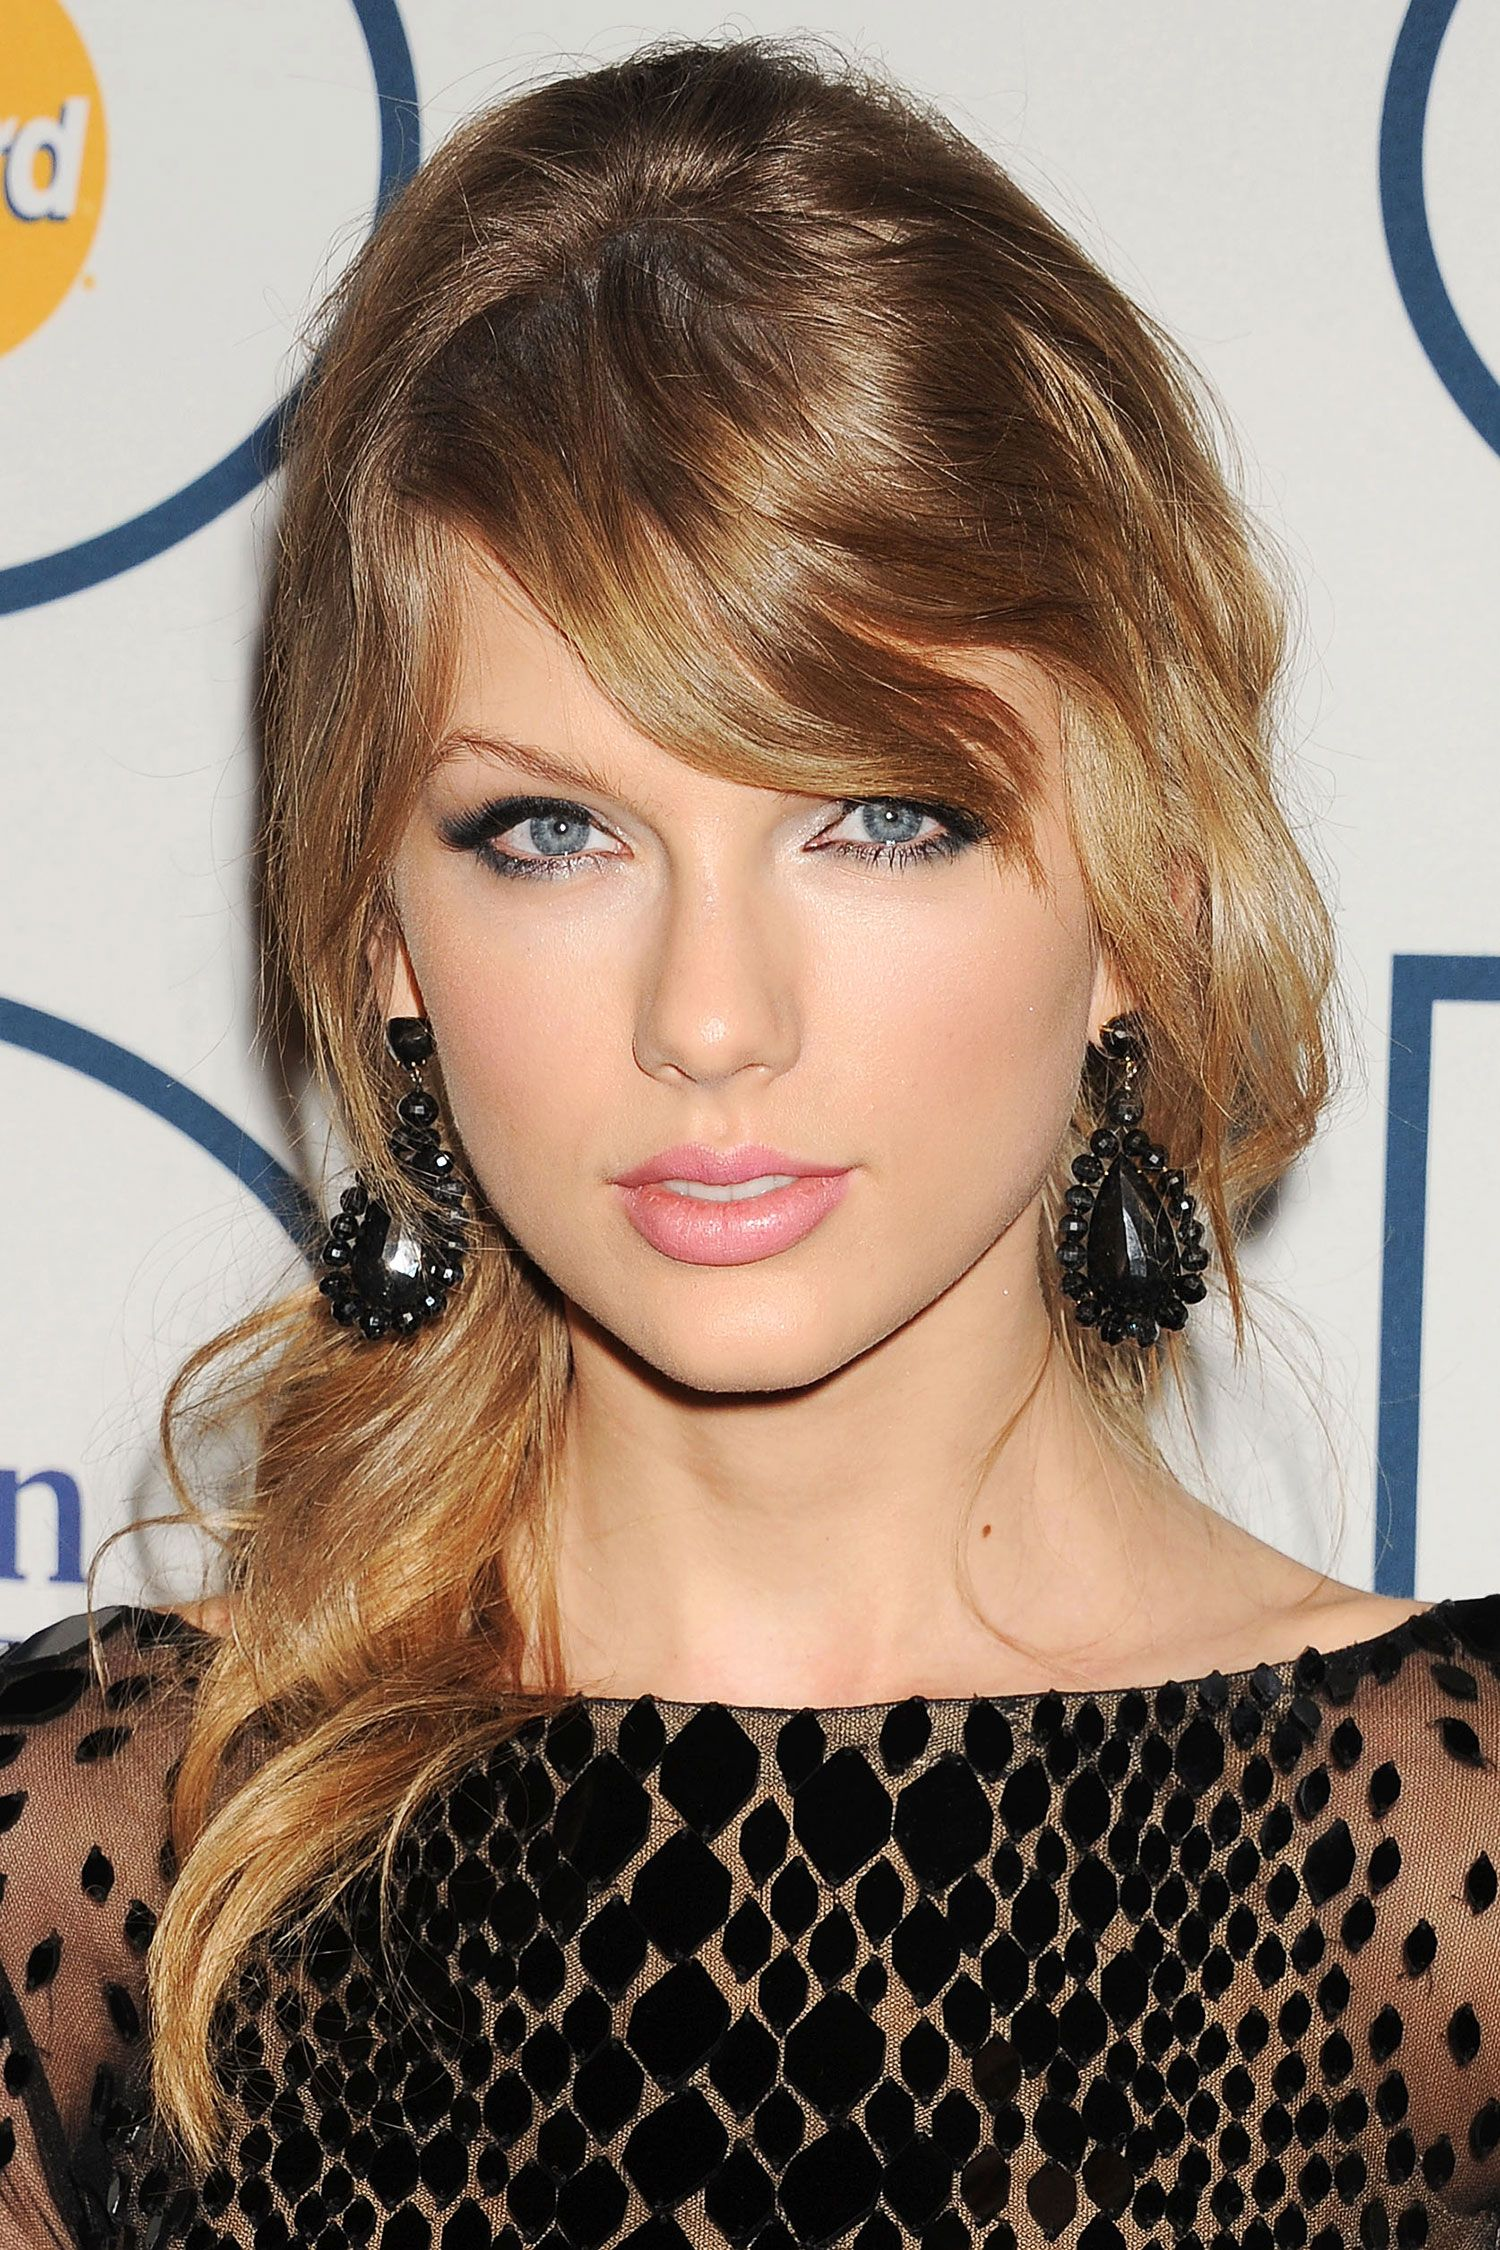 Straight perm for thick hair - Straight Perm For Short Hair Taylor Swift Hairstyles Taylor Swift S Curly Straight Short Long